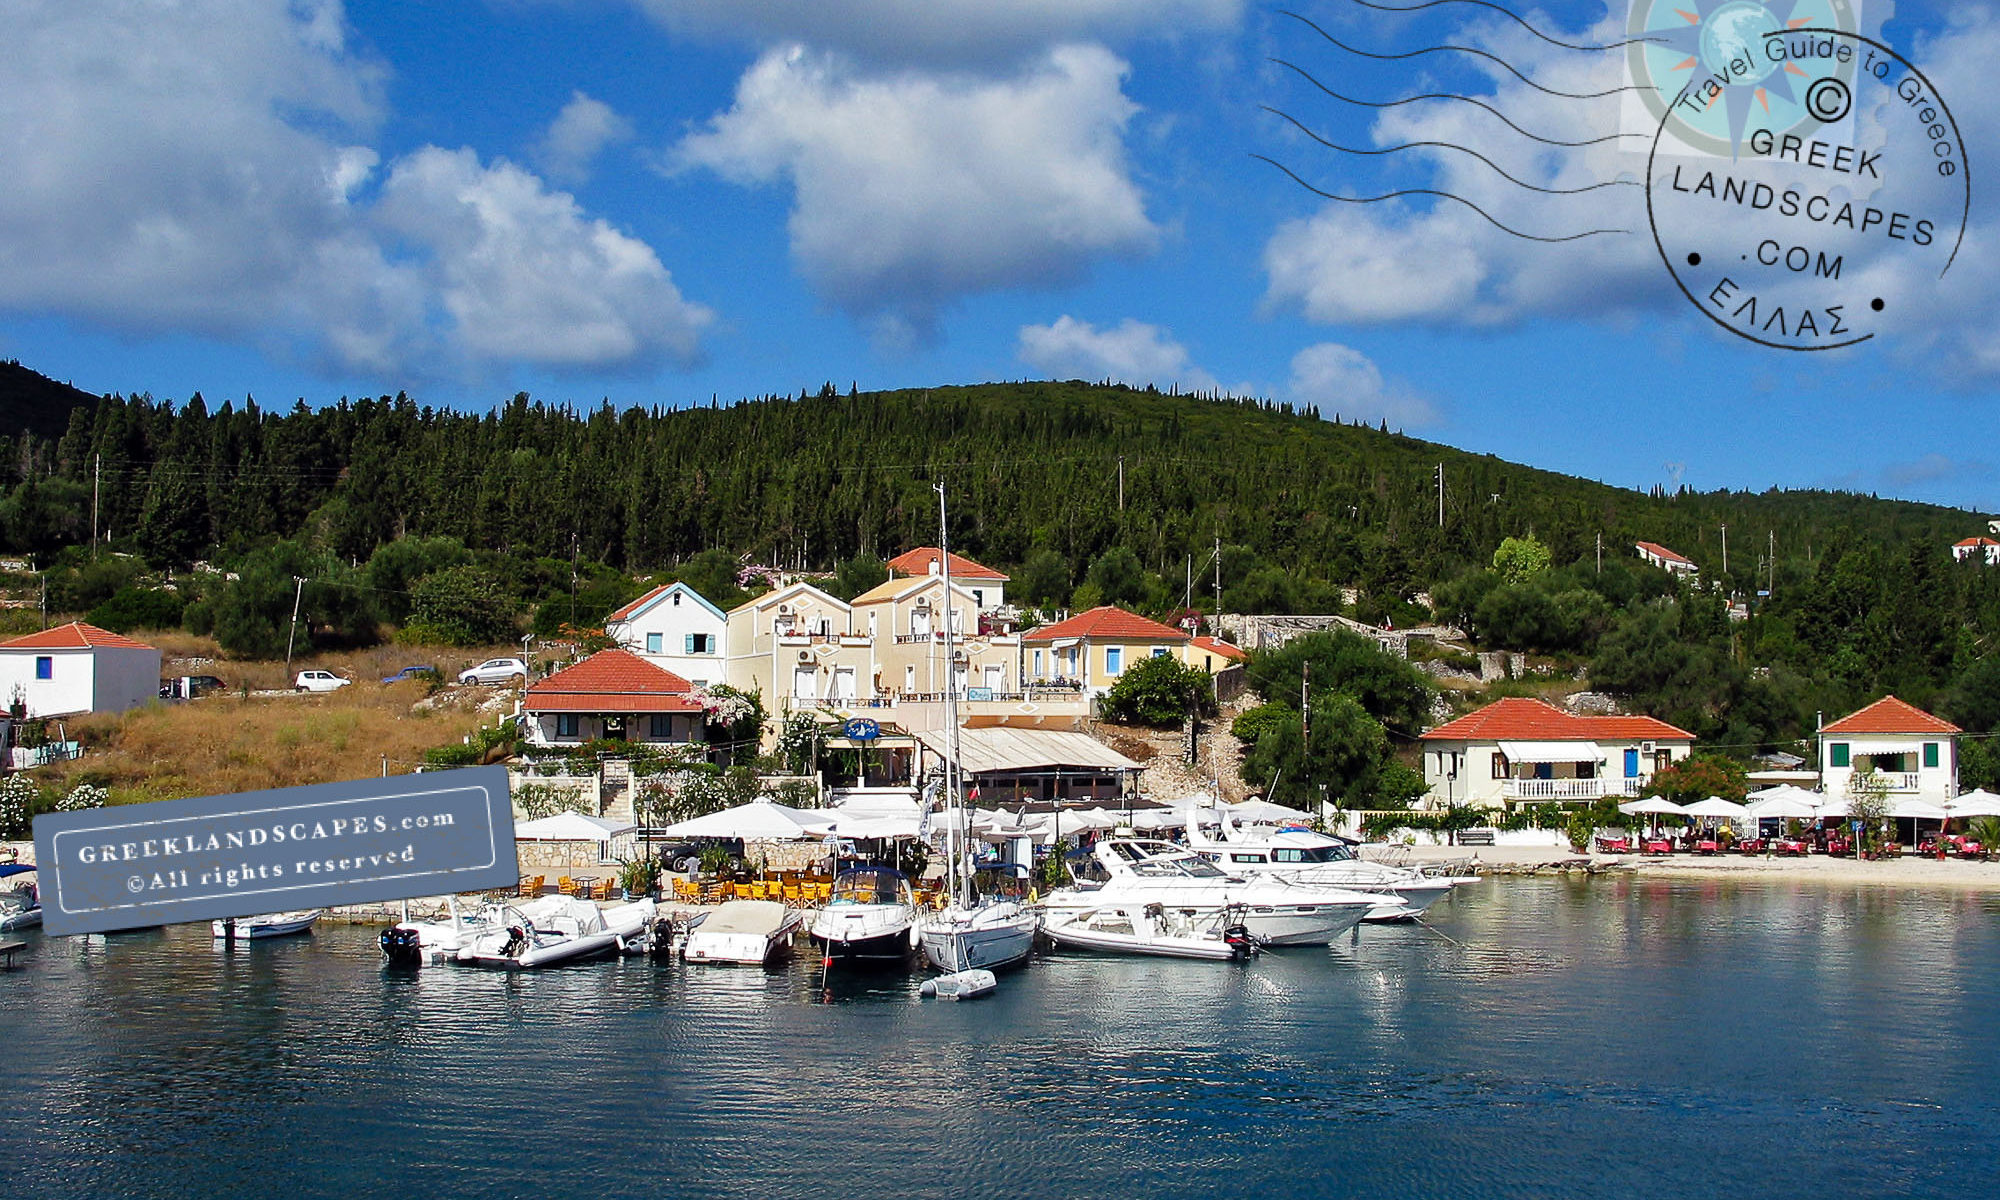 The harbor of Fiskardo in Kefalonia island